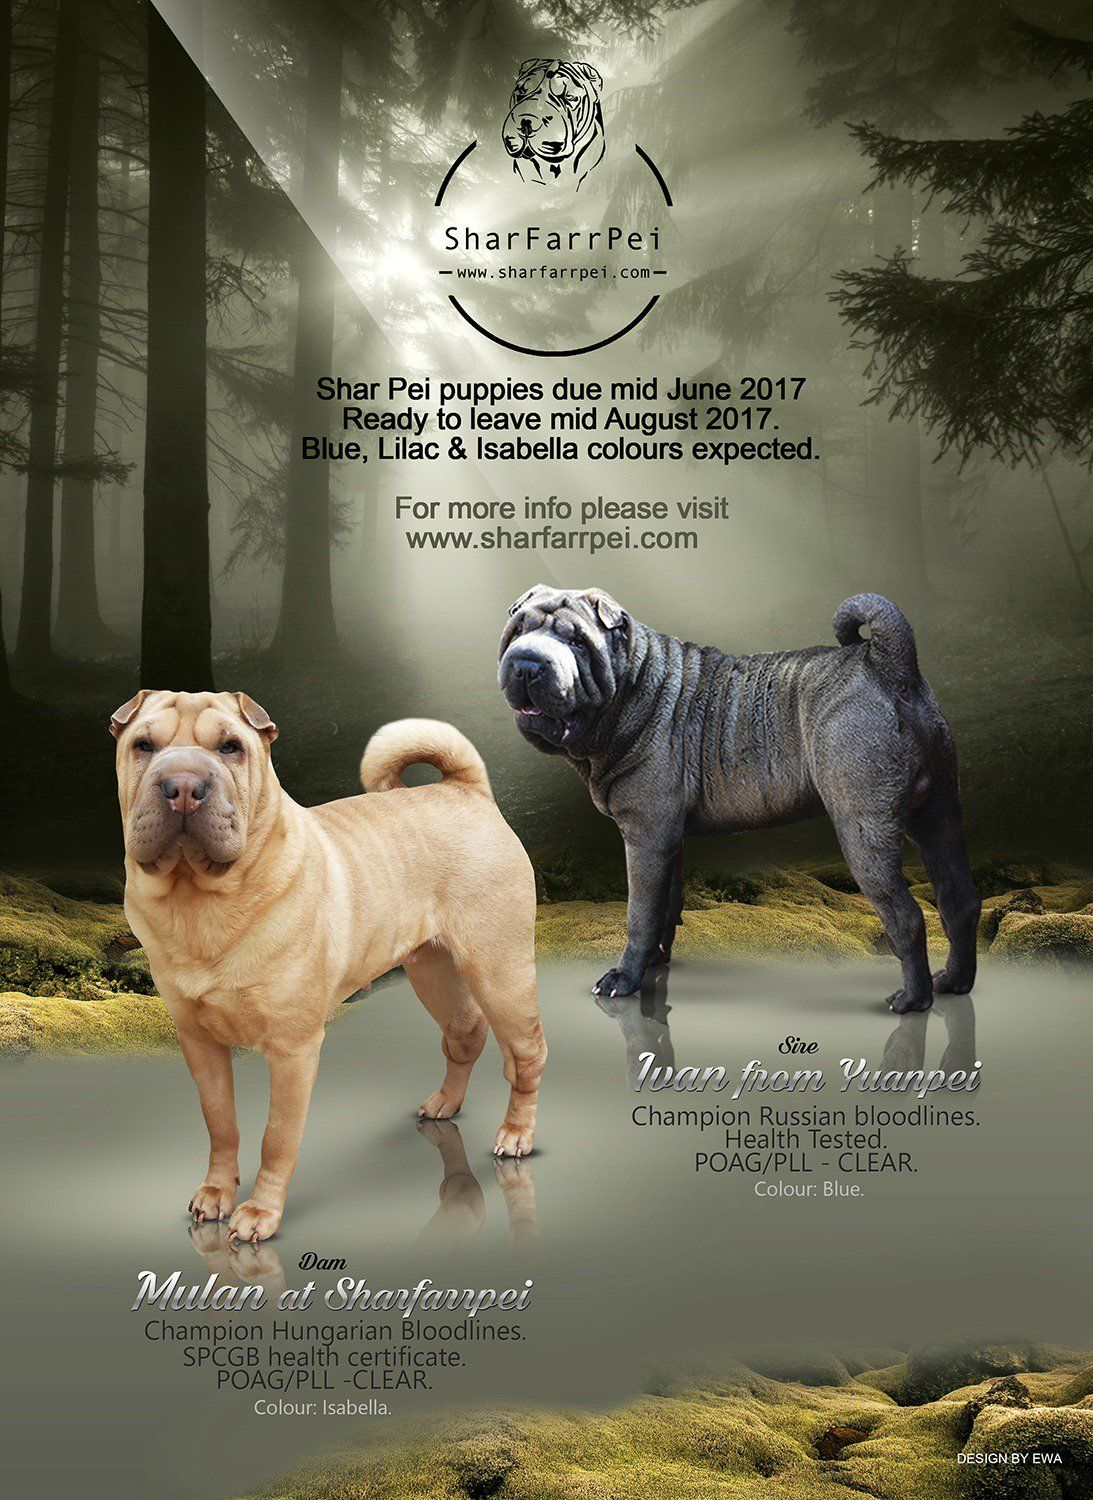 Sharfarrpei On Twitter Shar Pei Puppies Lab Puppies Puppies